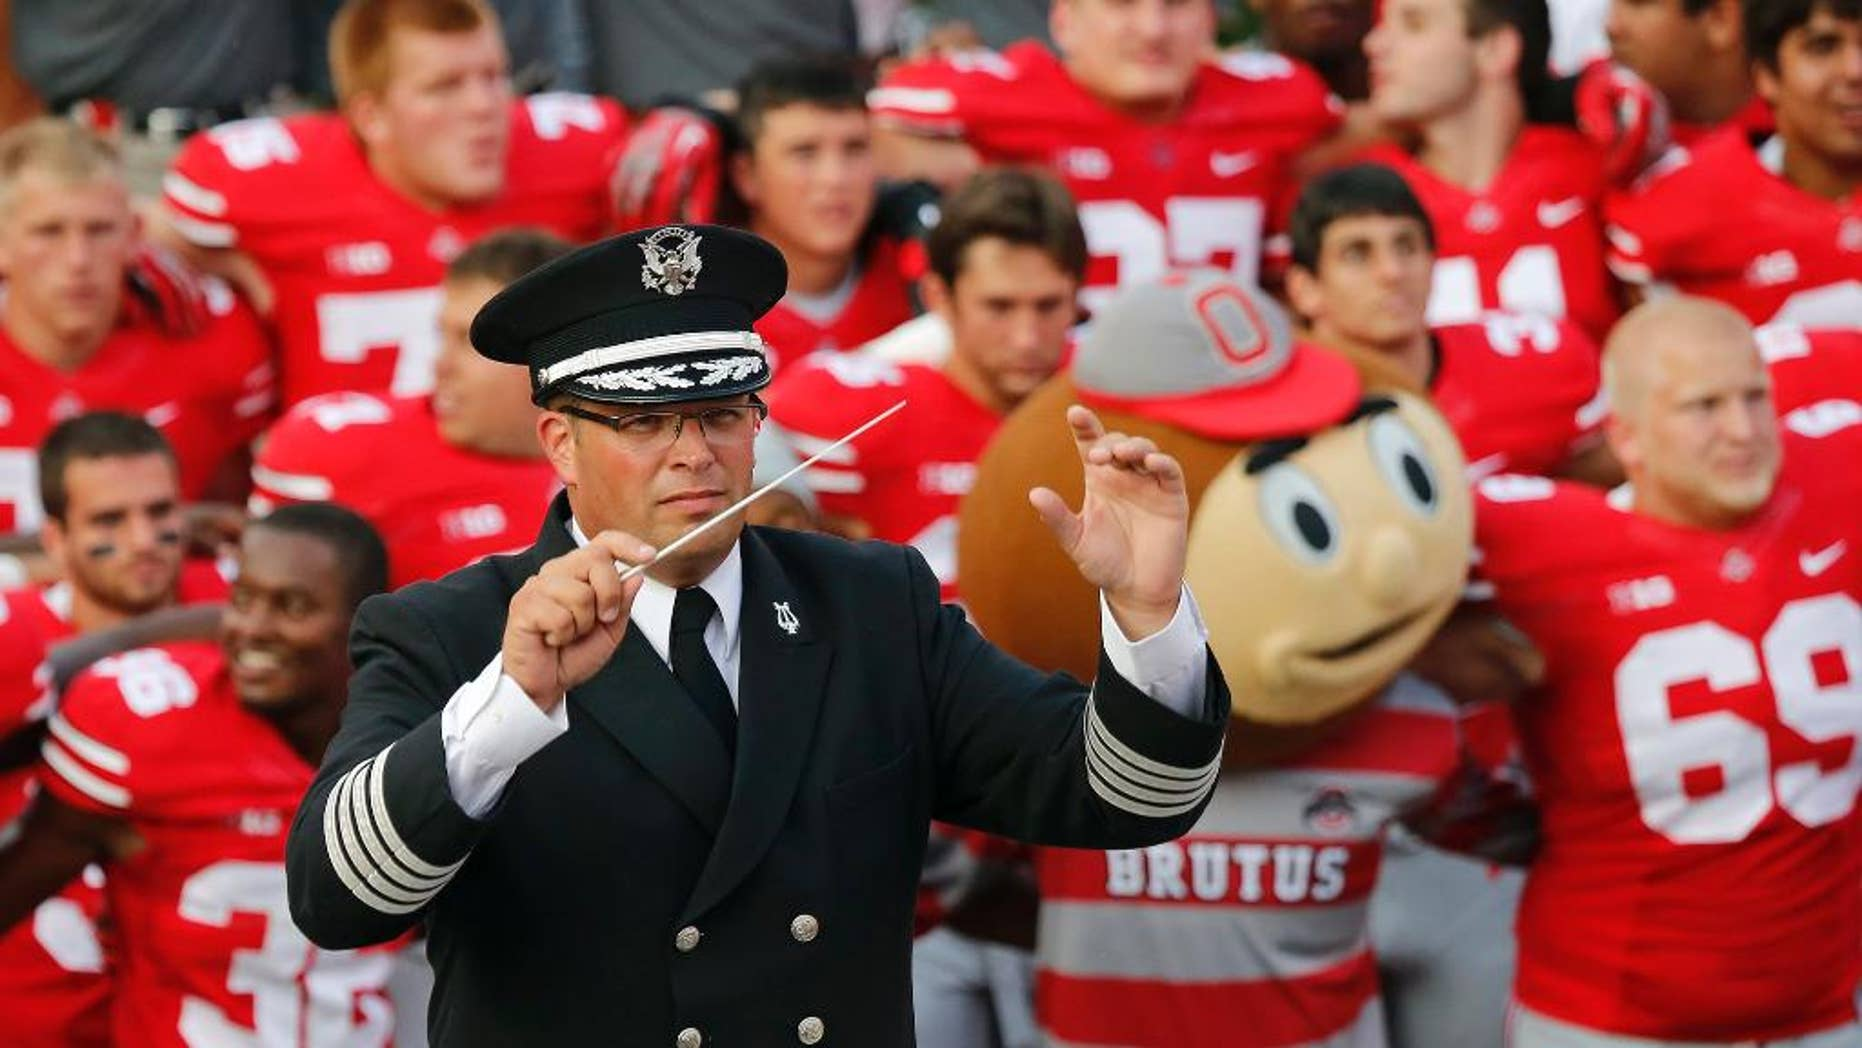 """FILE - In this Sept. 7, 2013 file photo, Ohio State University marching band director Jonathan Waters leads the band in """"Carmen Ohio"""" following a NCAA football game against San Diego State at Ohio Stadium in Columbus, Ohio. Ohio State officials say there is no recent record of campus police attending an annual ritual where marching band members entered Ohio Stadium in their underwear. The Midnight Ramps were cited in an investigation into the band's """"sexualized culture"""" that resulted in Waters' July 24 firing. (AP Photo/The Columbus Dispatch, Adam Cairns, File)"""